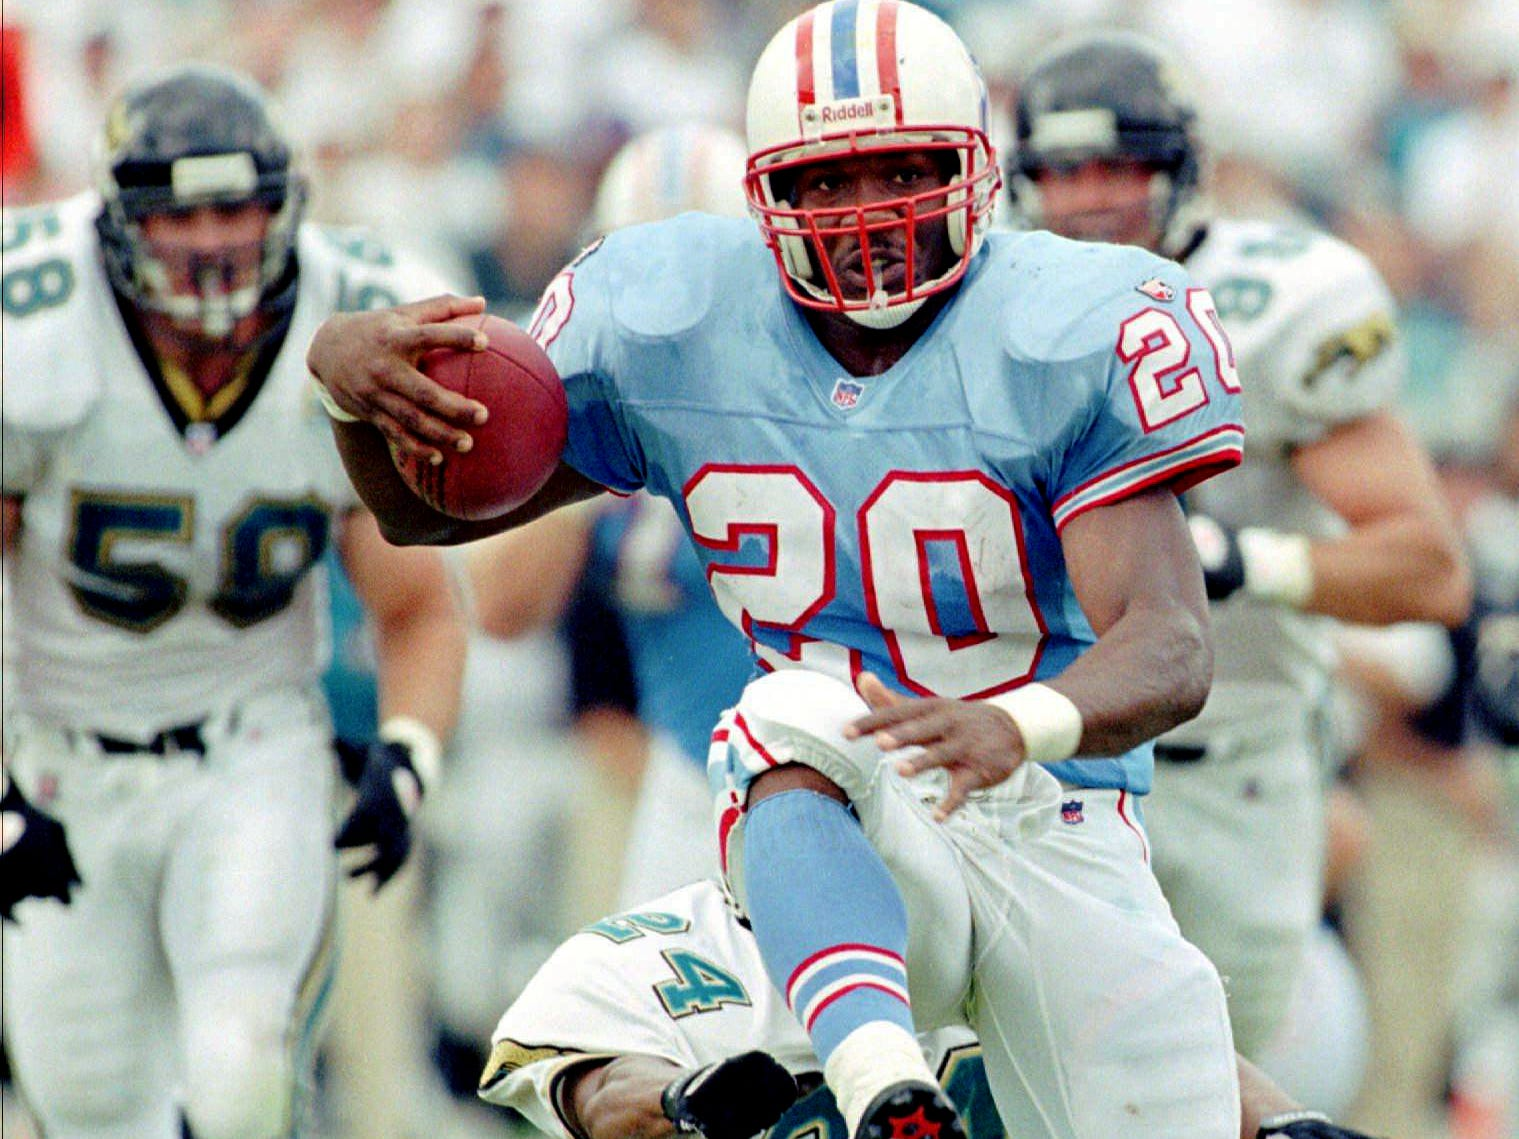 Houston Oilers running back Rodney Thomas (20) high steps away from Jacksonville Jaguars Bryan Schwartz (58) and Harry Colon (24) during a second half run Sept. 3, 1995 in Jacksonville, Fla. The Oilers defeated the Jags 10-3.